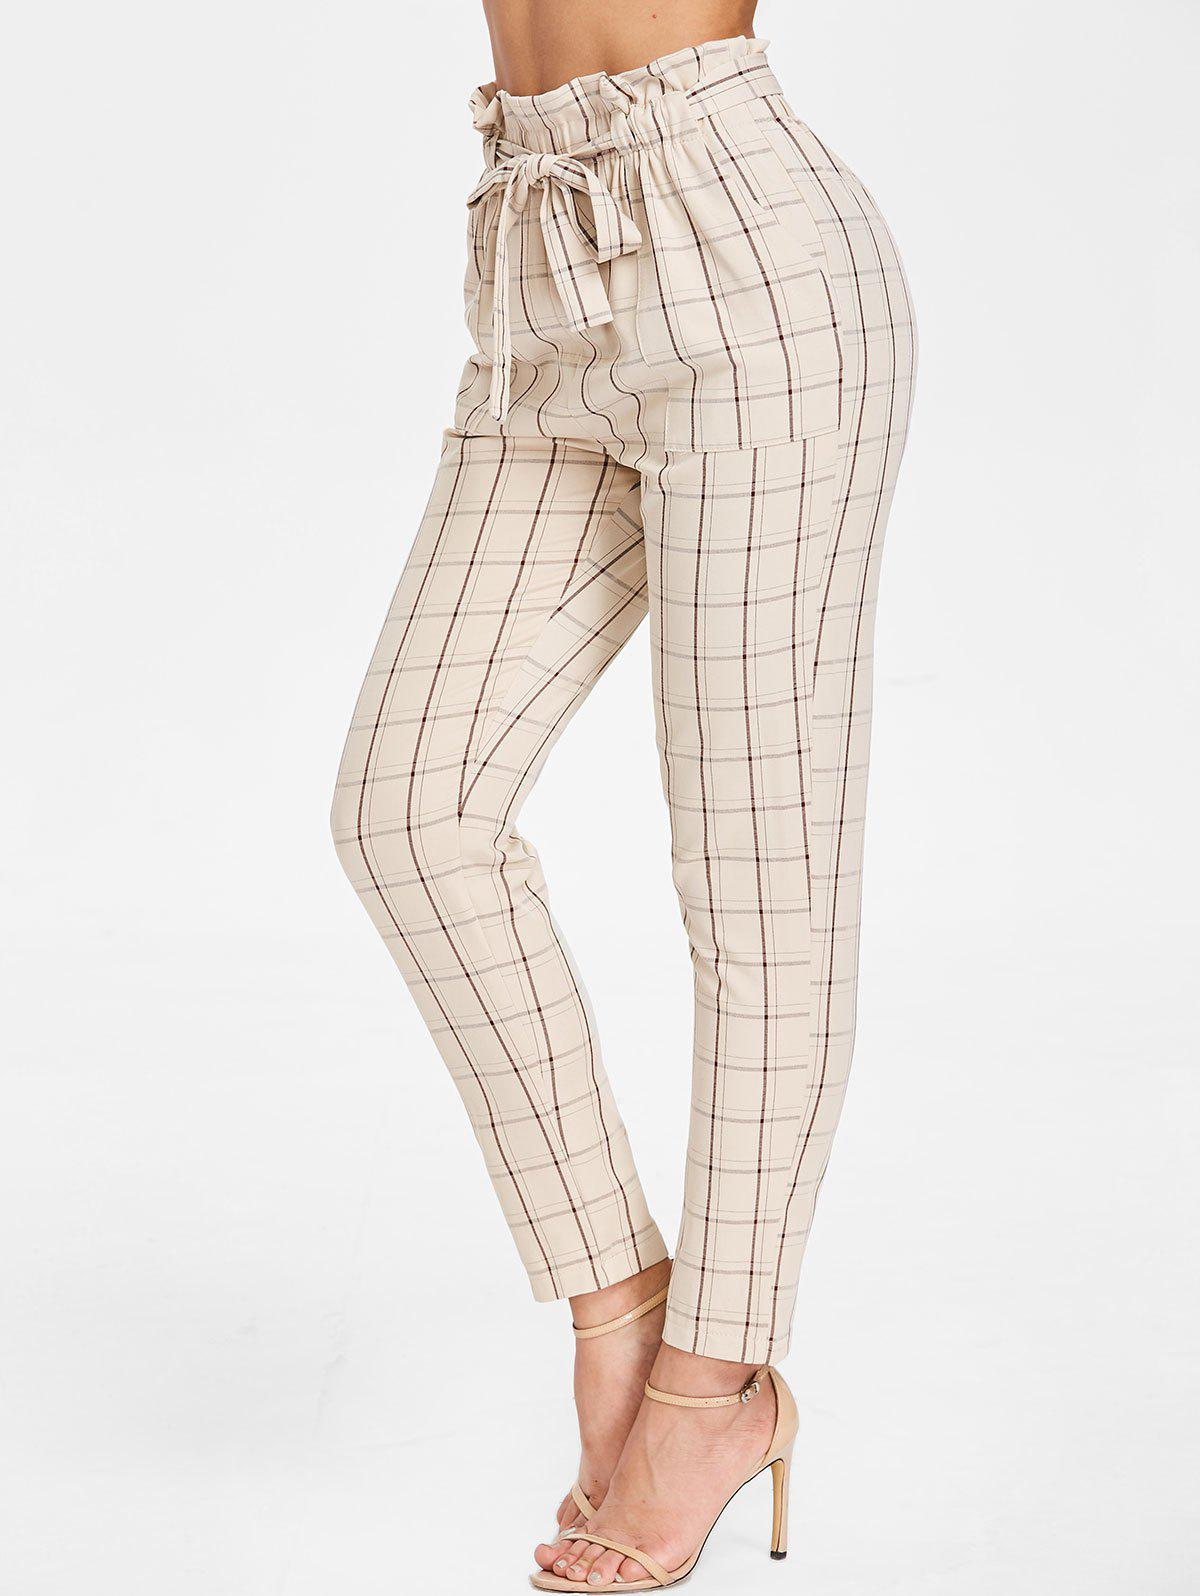 Shops Belted Elastic Waist Plaid Pants